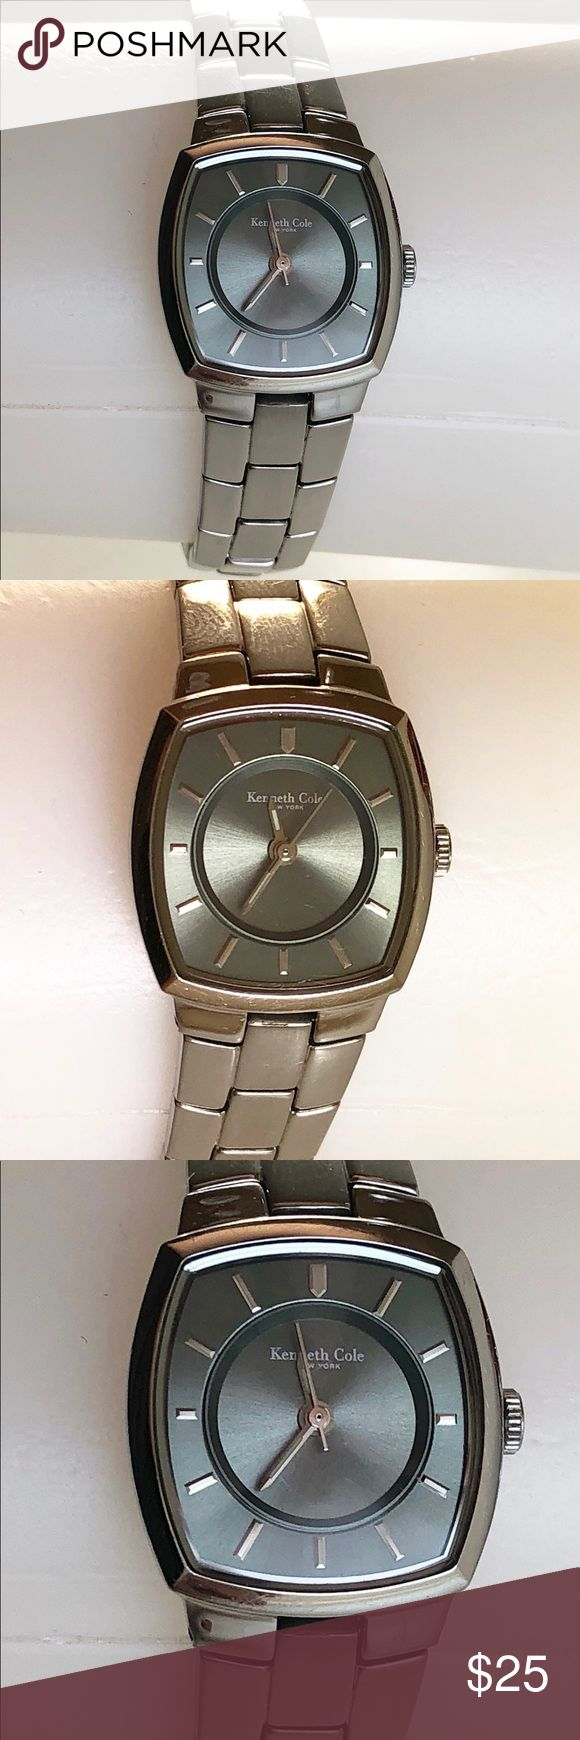 Kenneth Cole Silver Women's Watch Kenneth Cole Classic women's watch features a 24mm wide solid stainless steel case with a fixed bezel and textured push-pull crown. The watch is a Japan movement. It is equipped with a solid stainless steel bracelet with a deployment type push button clasp. It is a previously owned item, but well taken care of. Please message me if you are wanting any additional details or pictures from different angles. Thanks for looking! Kenneth Cole Accessories Watches